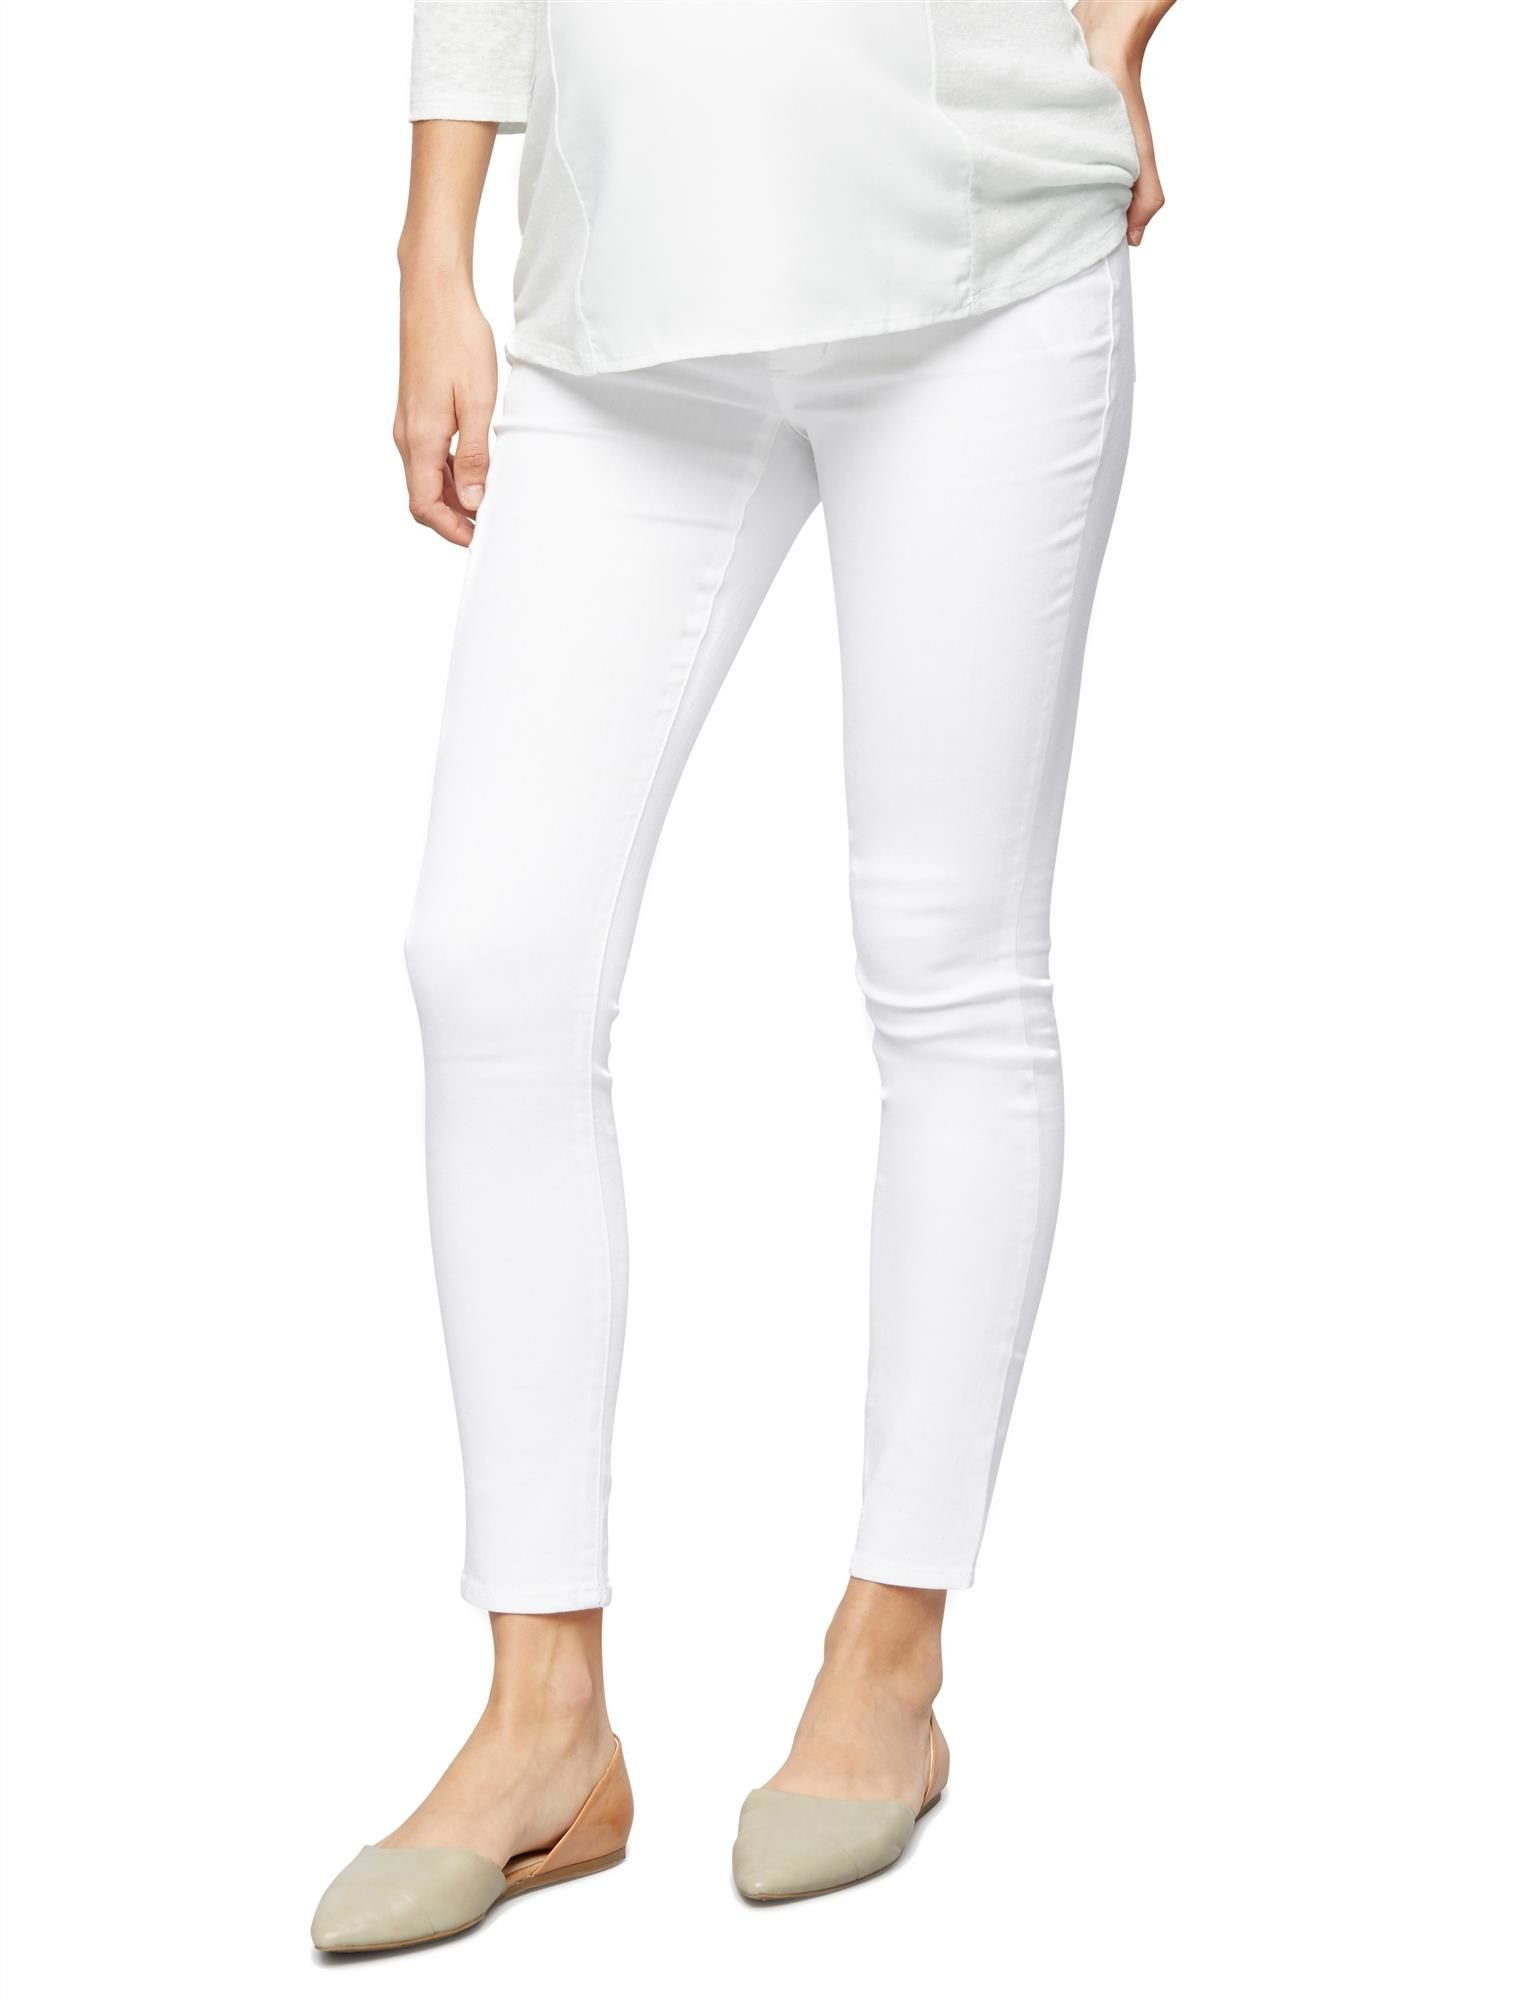 A Pea in the Pod Luxe Essentials Denim Secret Fit Belly Skinny Ankle Maternity Jeans